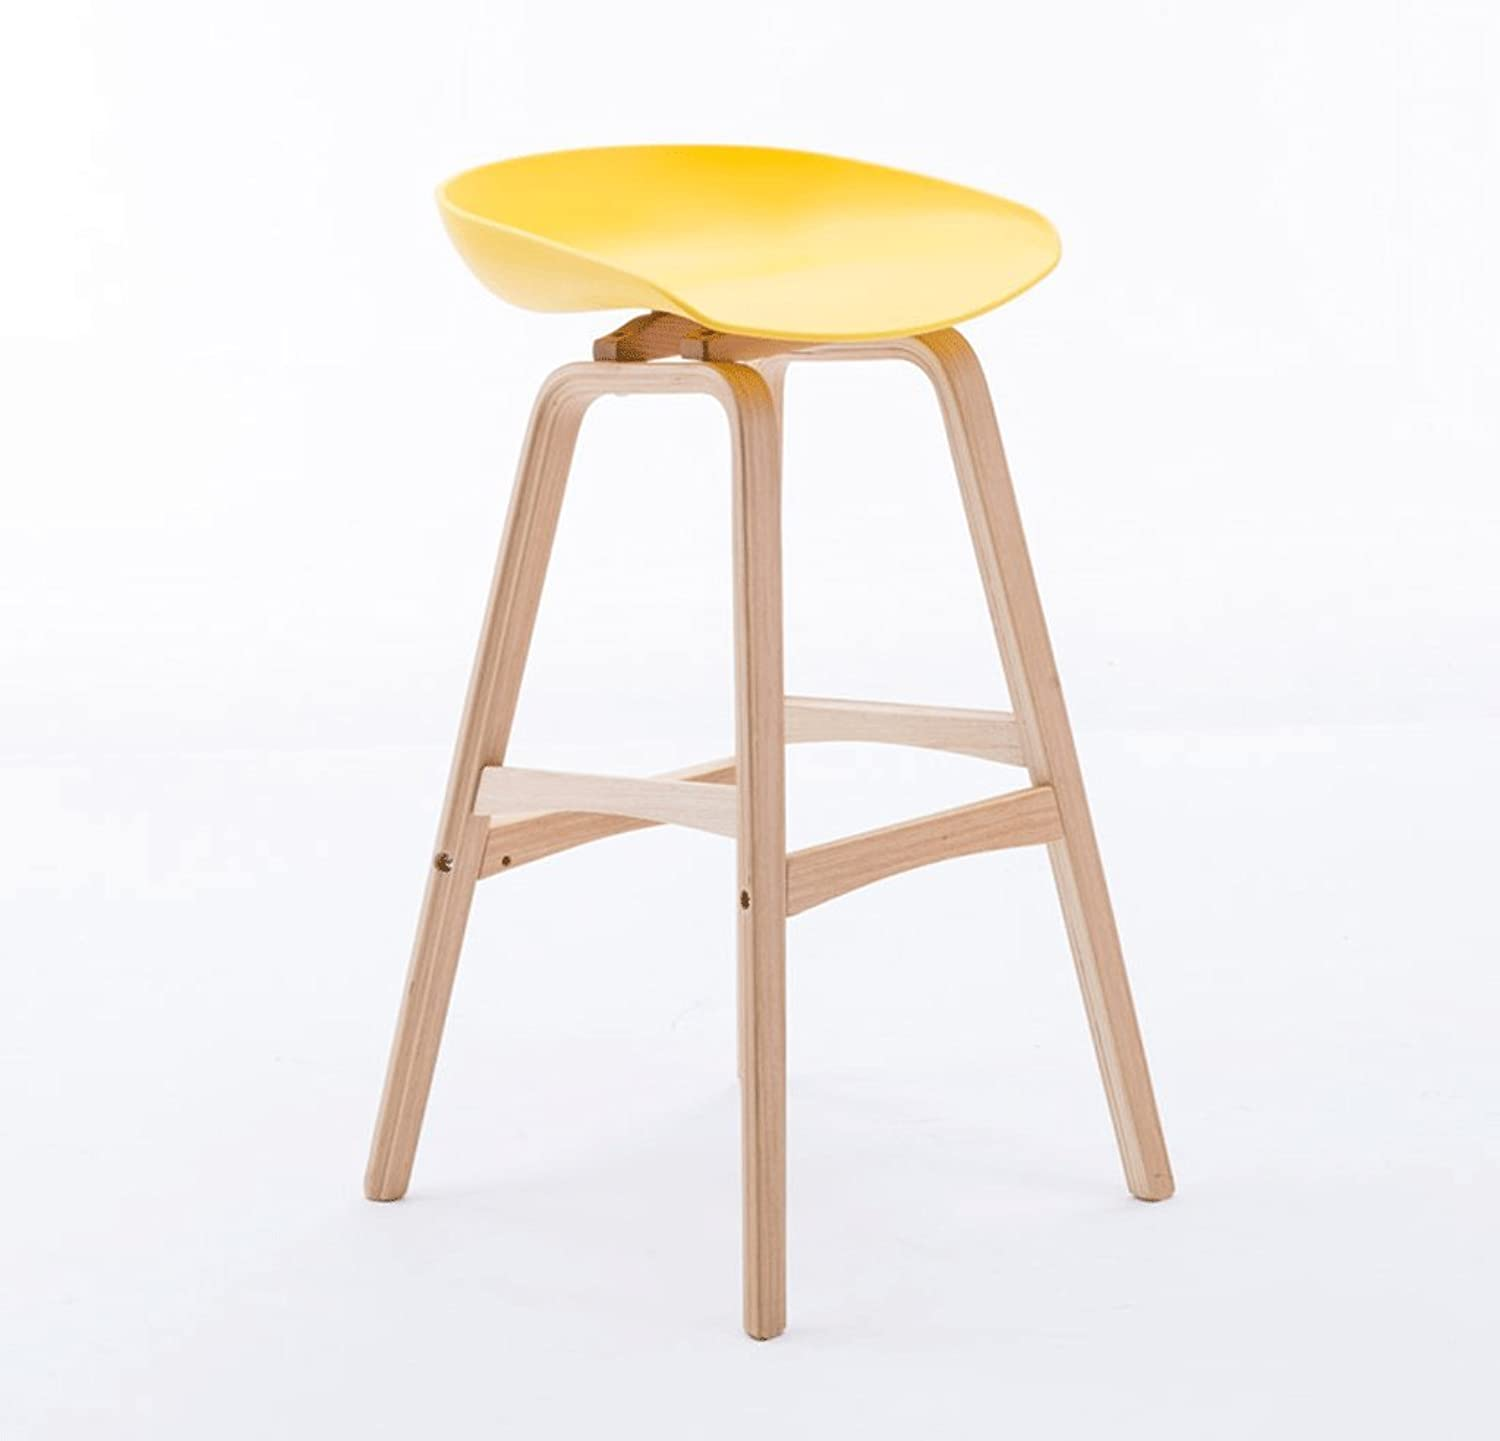 Bar stool Solid Wood PP Material High Stools, Bar Lounge Chairs, Home Decor Bar Stools, Wood color Stool Legs XXT (color   Yellow, Size   H65CM)